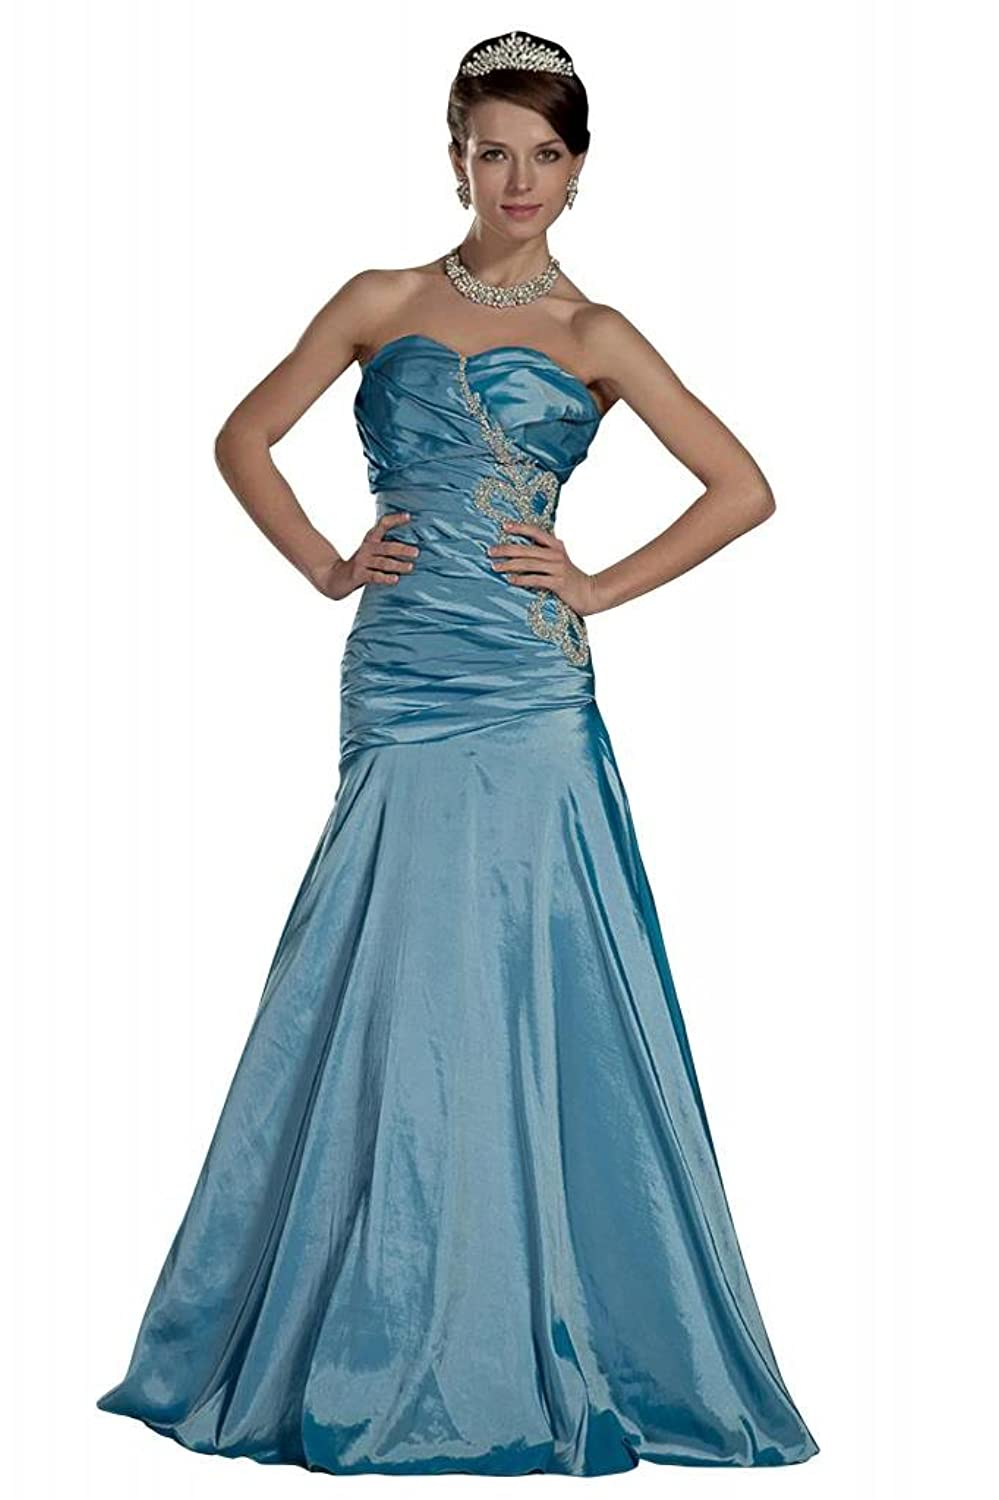 GEORGE BRIDE Classic Long Strapless Prom Gowns with Beading Decoration